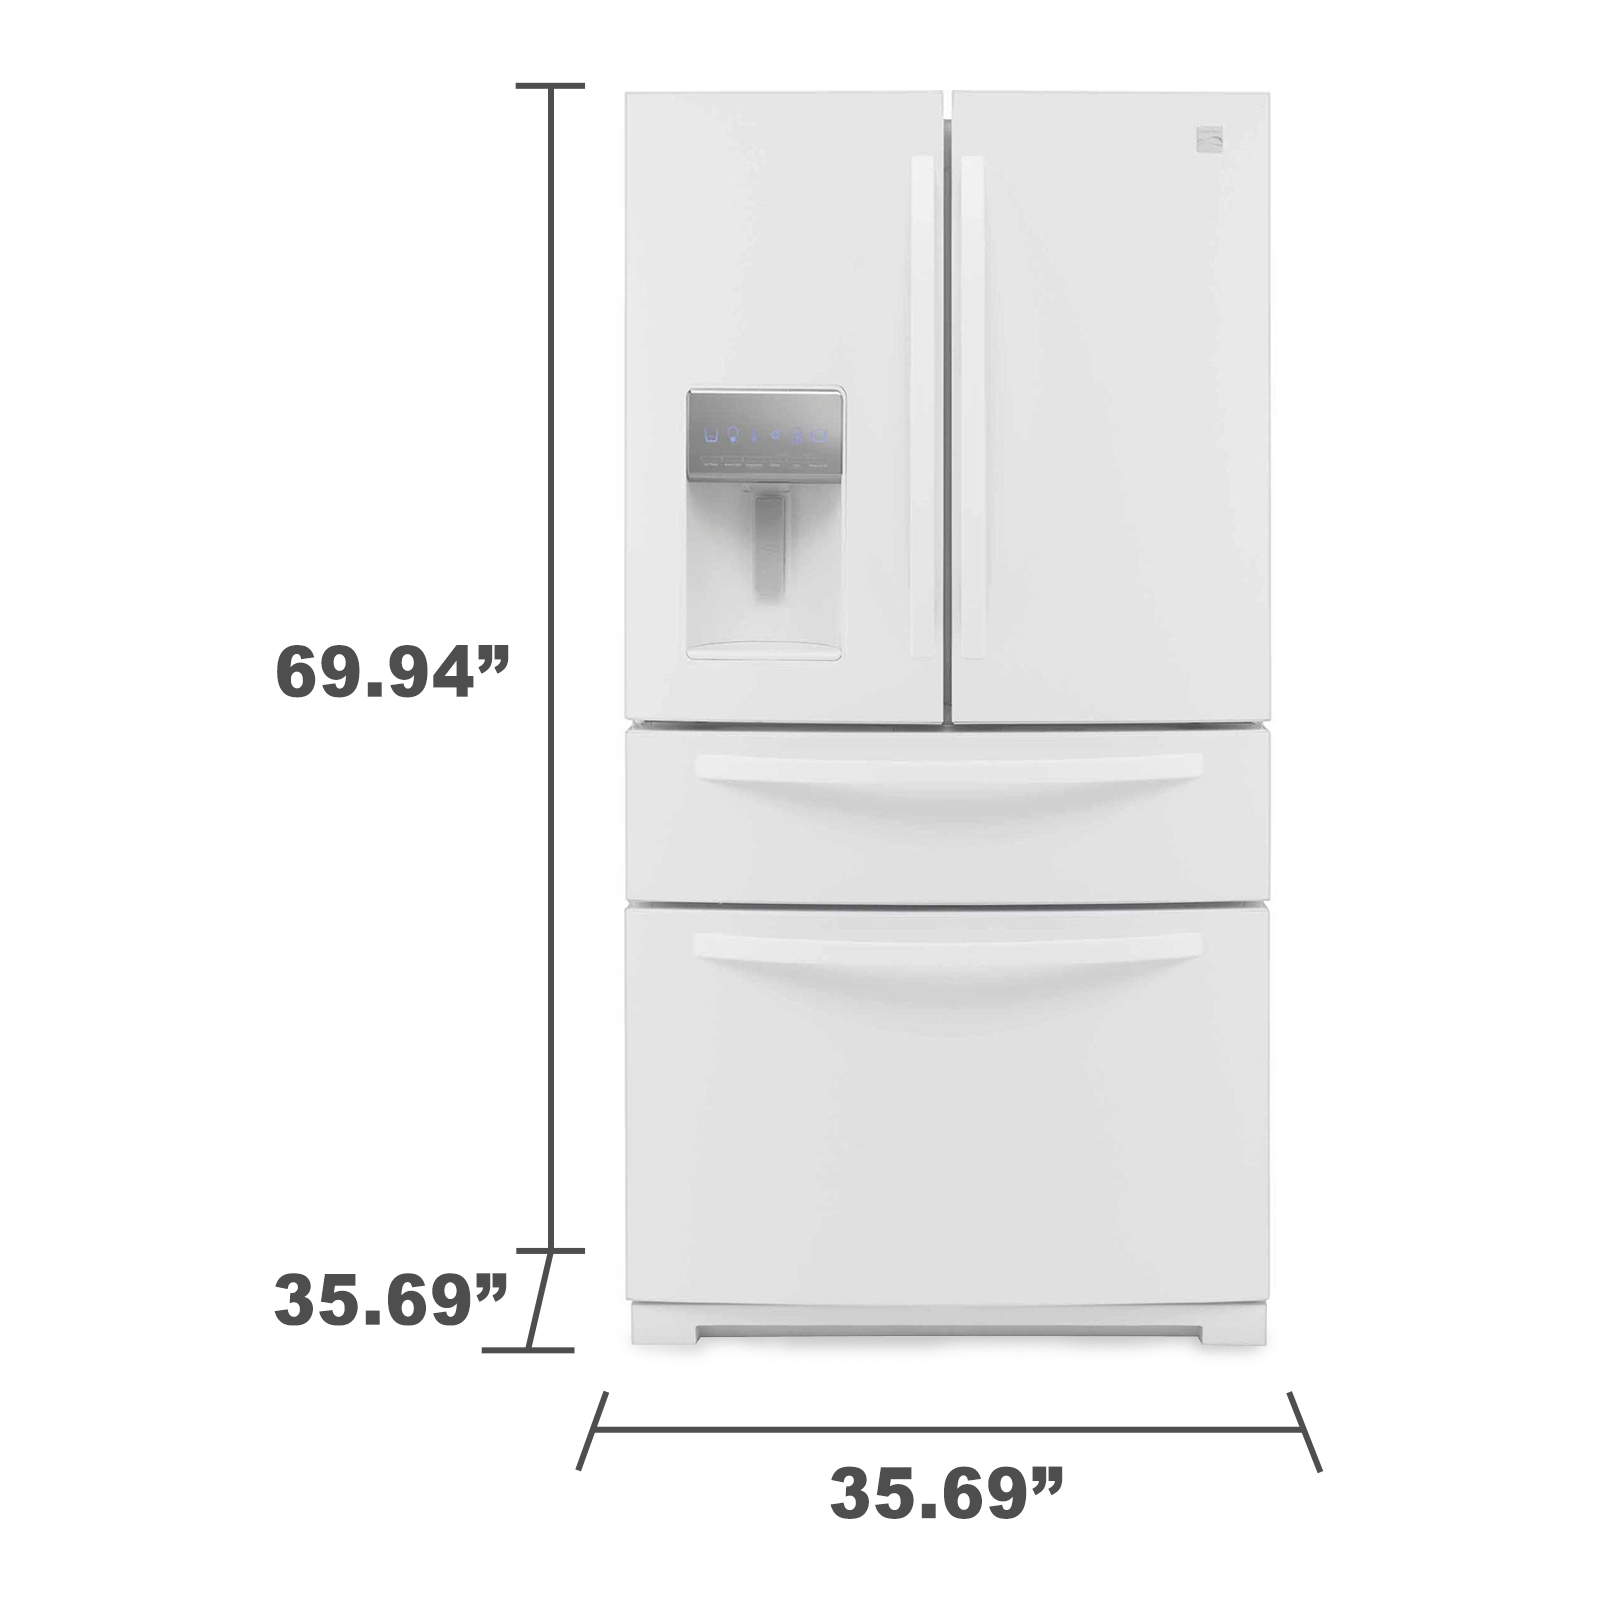 Kenmore 72382 26.2 cu. ft. French Door Refrigerator w/ Fresh Storage Drawer - White